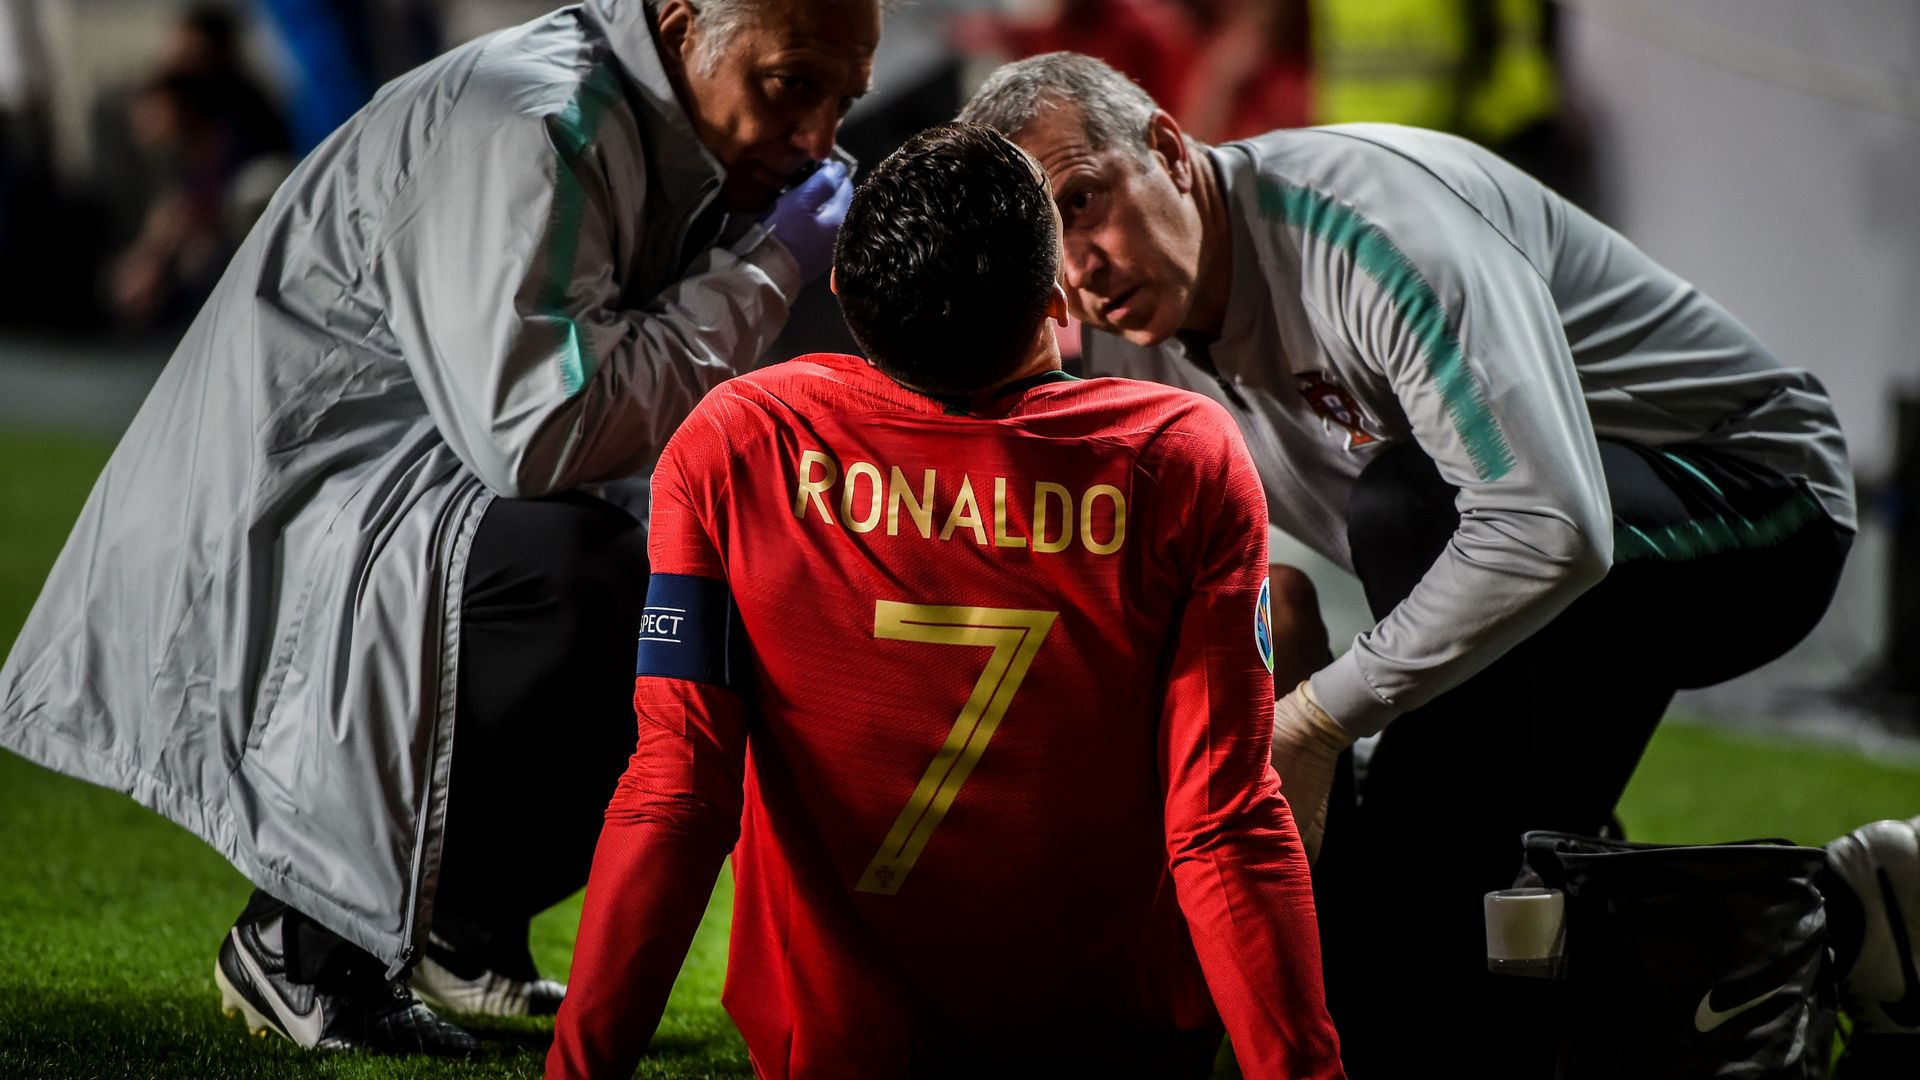 Cristiano Ronaldo Out Two Weeks With Right Leg Injury